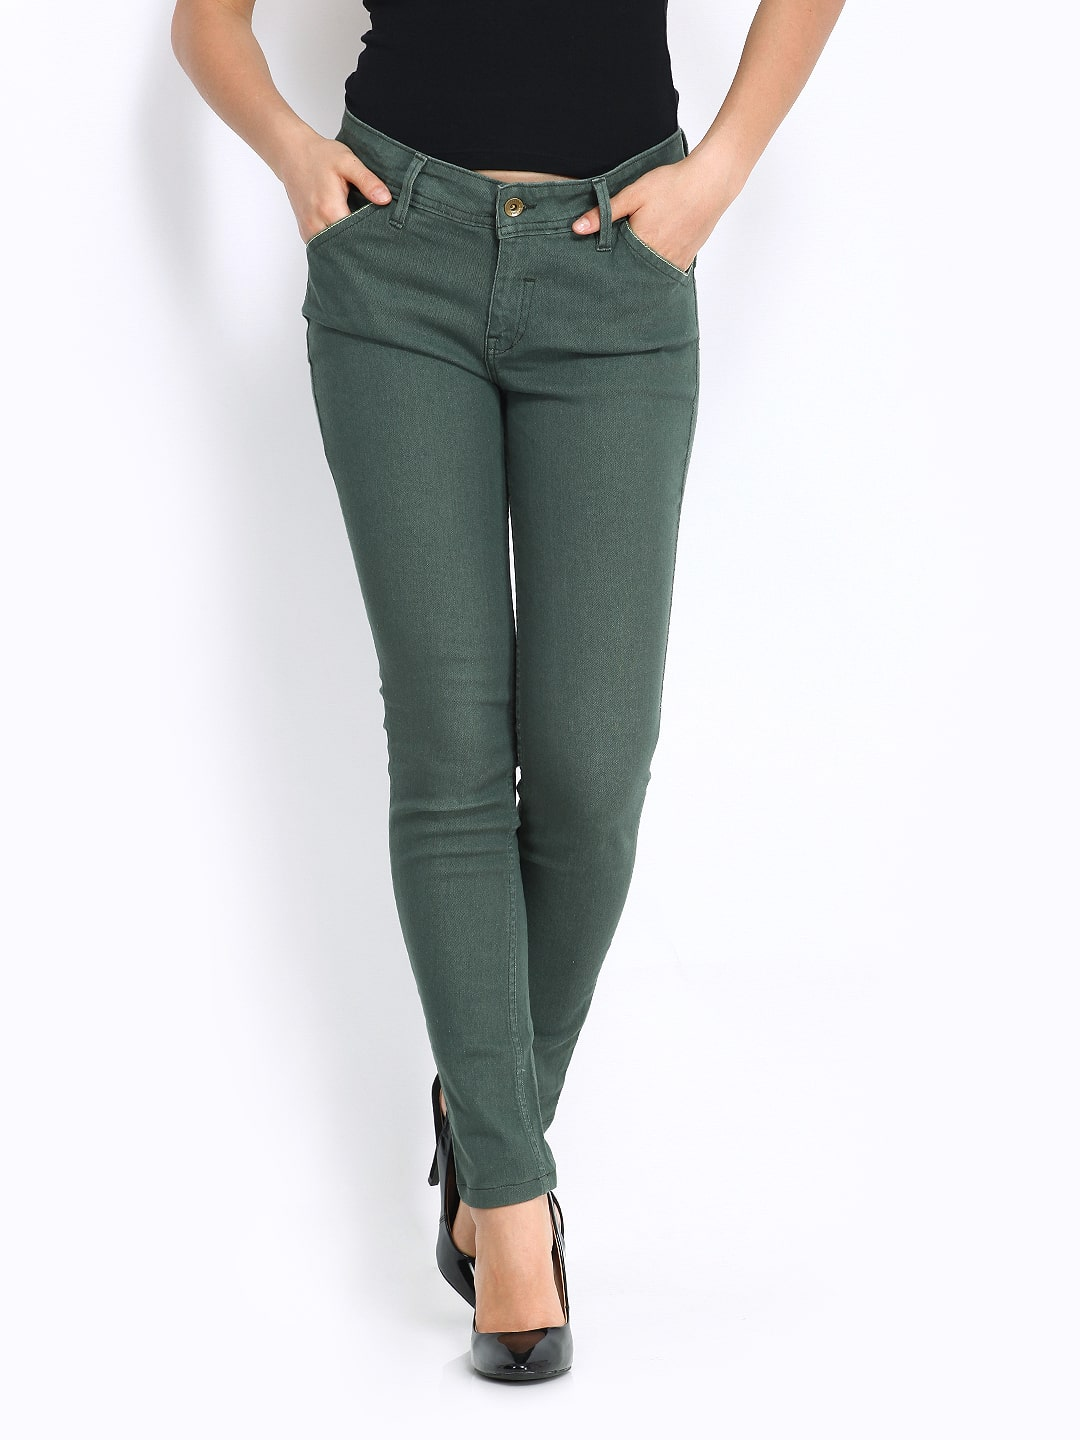 Free shipping BOTH ways on womens green jeans, from our vast selection of styles. Fast delivery, and 24/7/ real-person service with a smile. Click or call